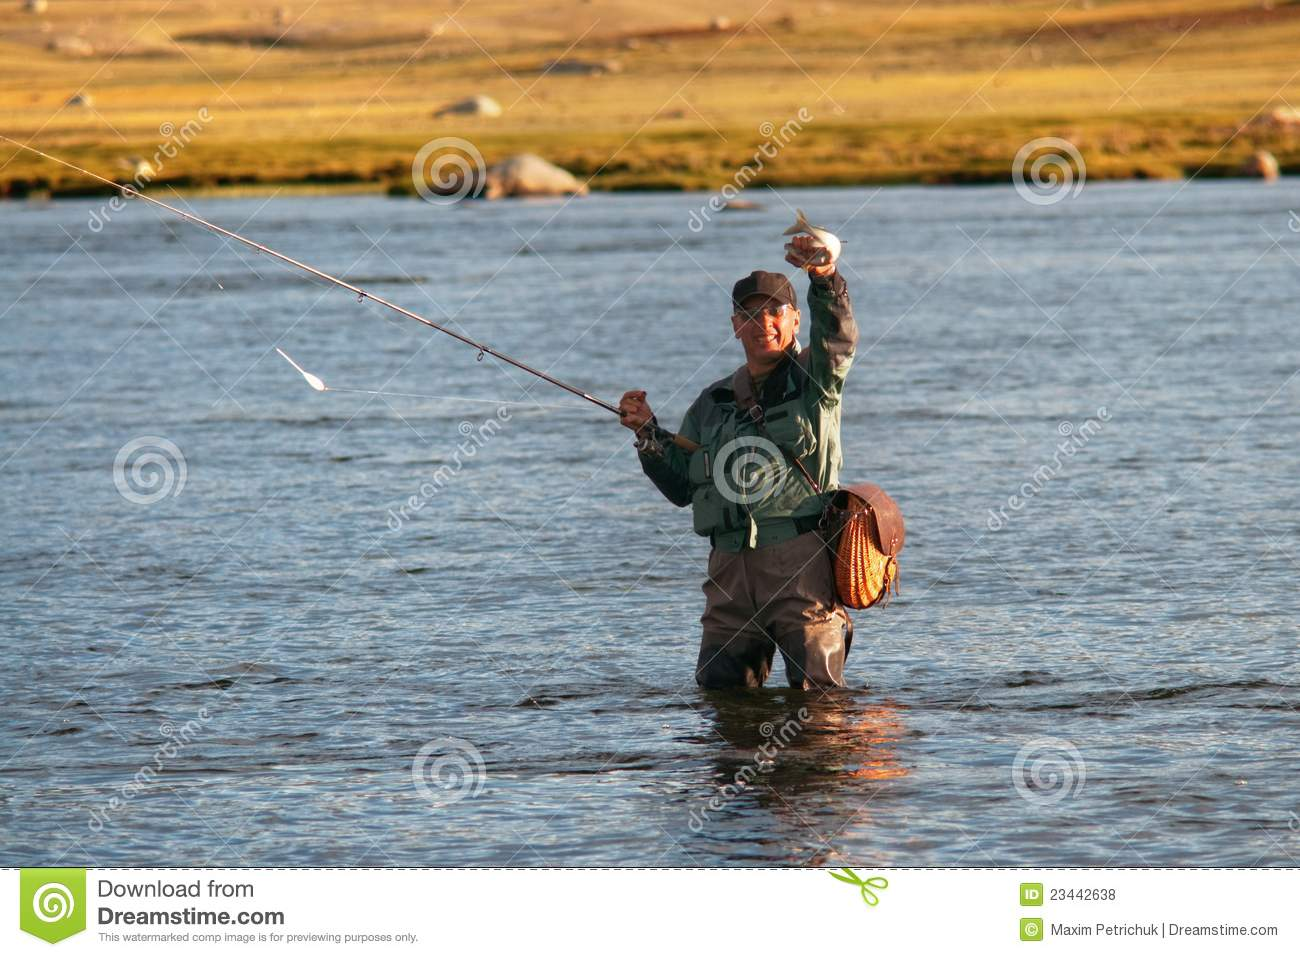 Fly fishing in mongolia royalty free stock photos image for Fly fishing mongolia